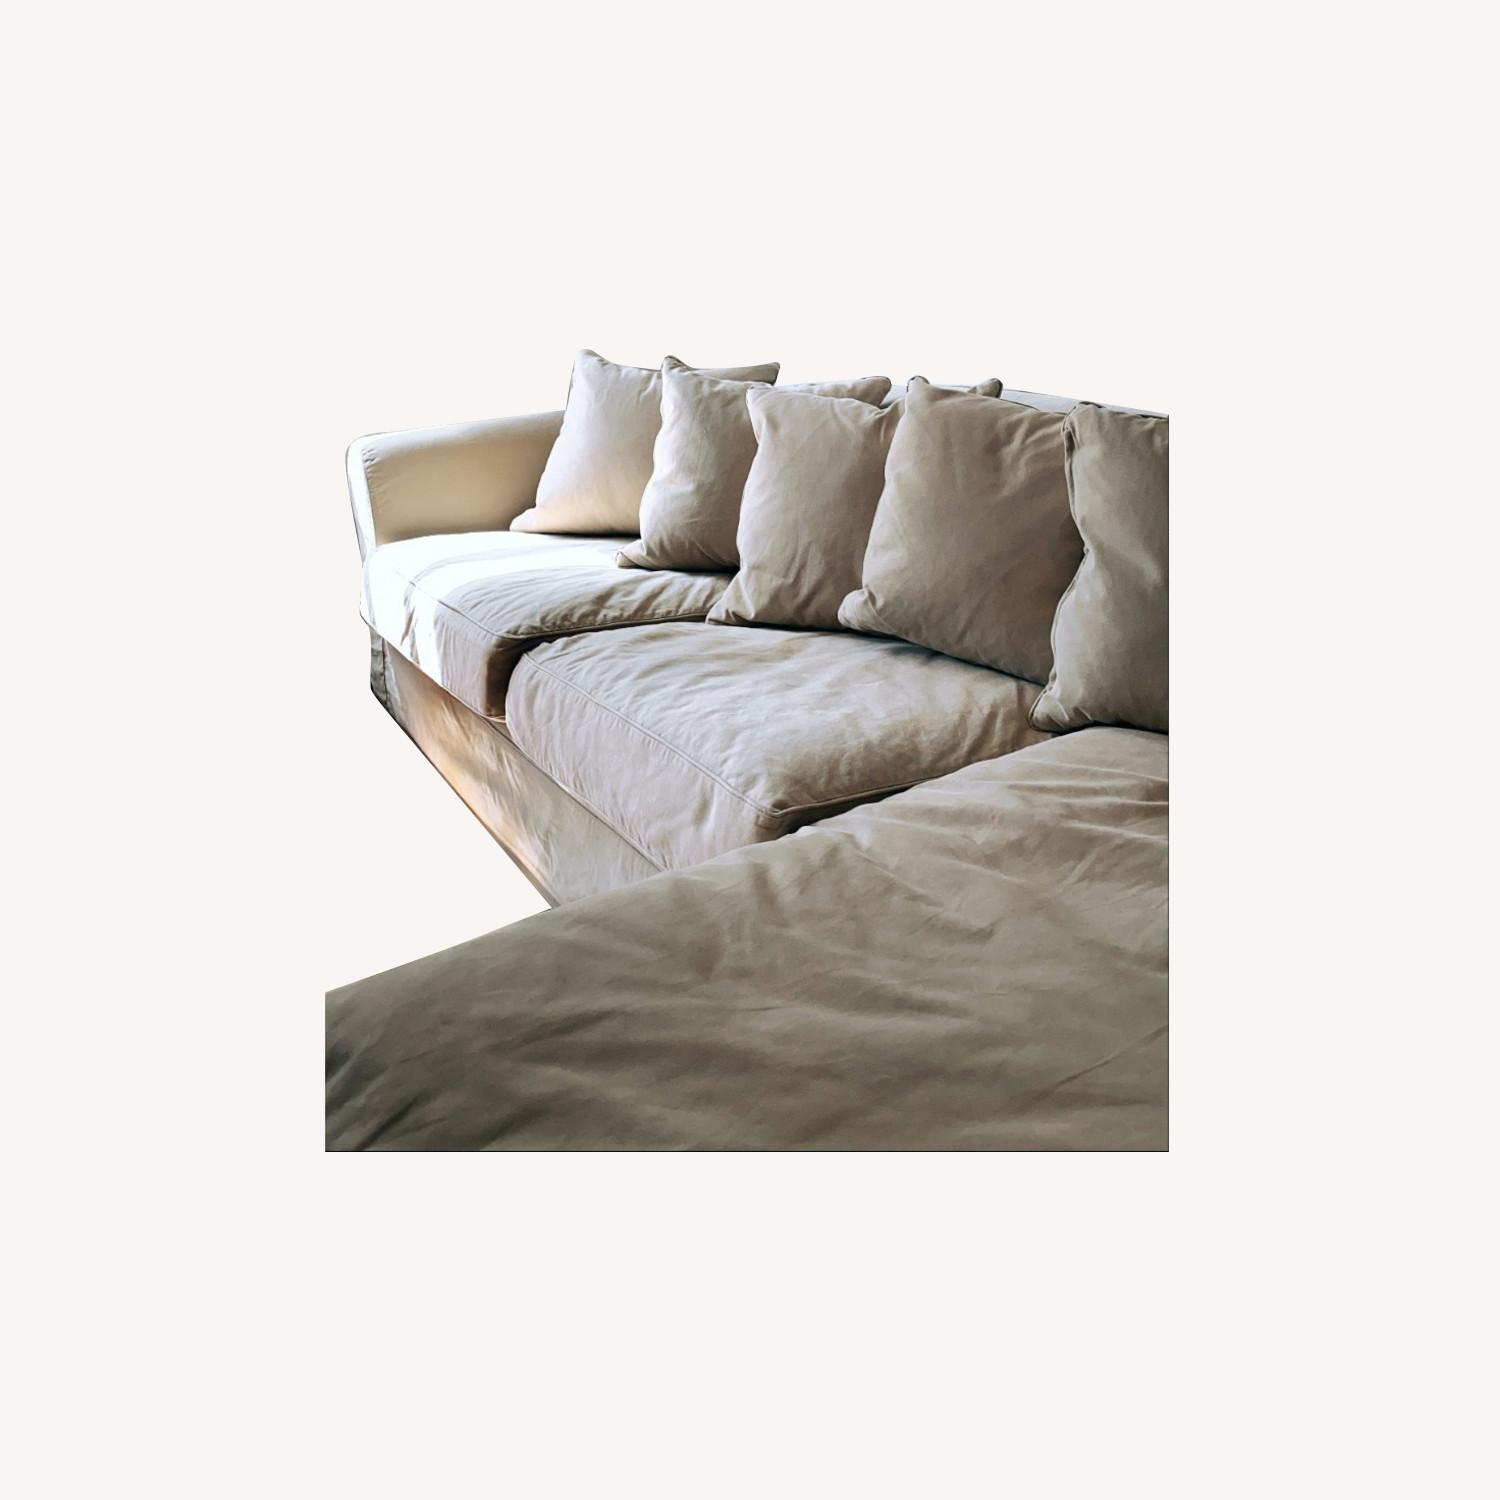 Restoration Hardware Camelback Sectional - image-0